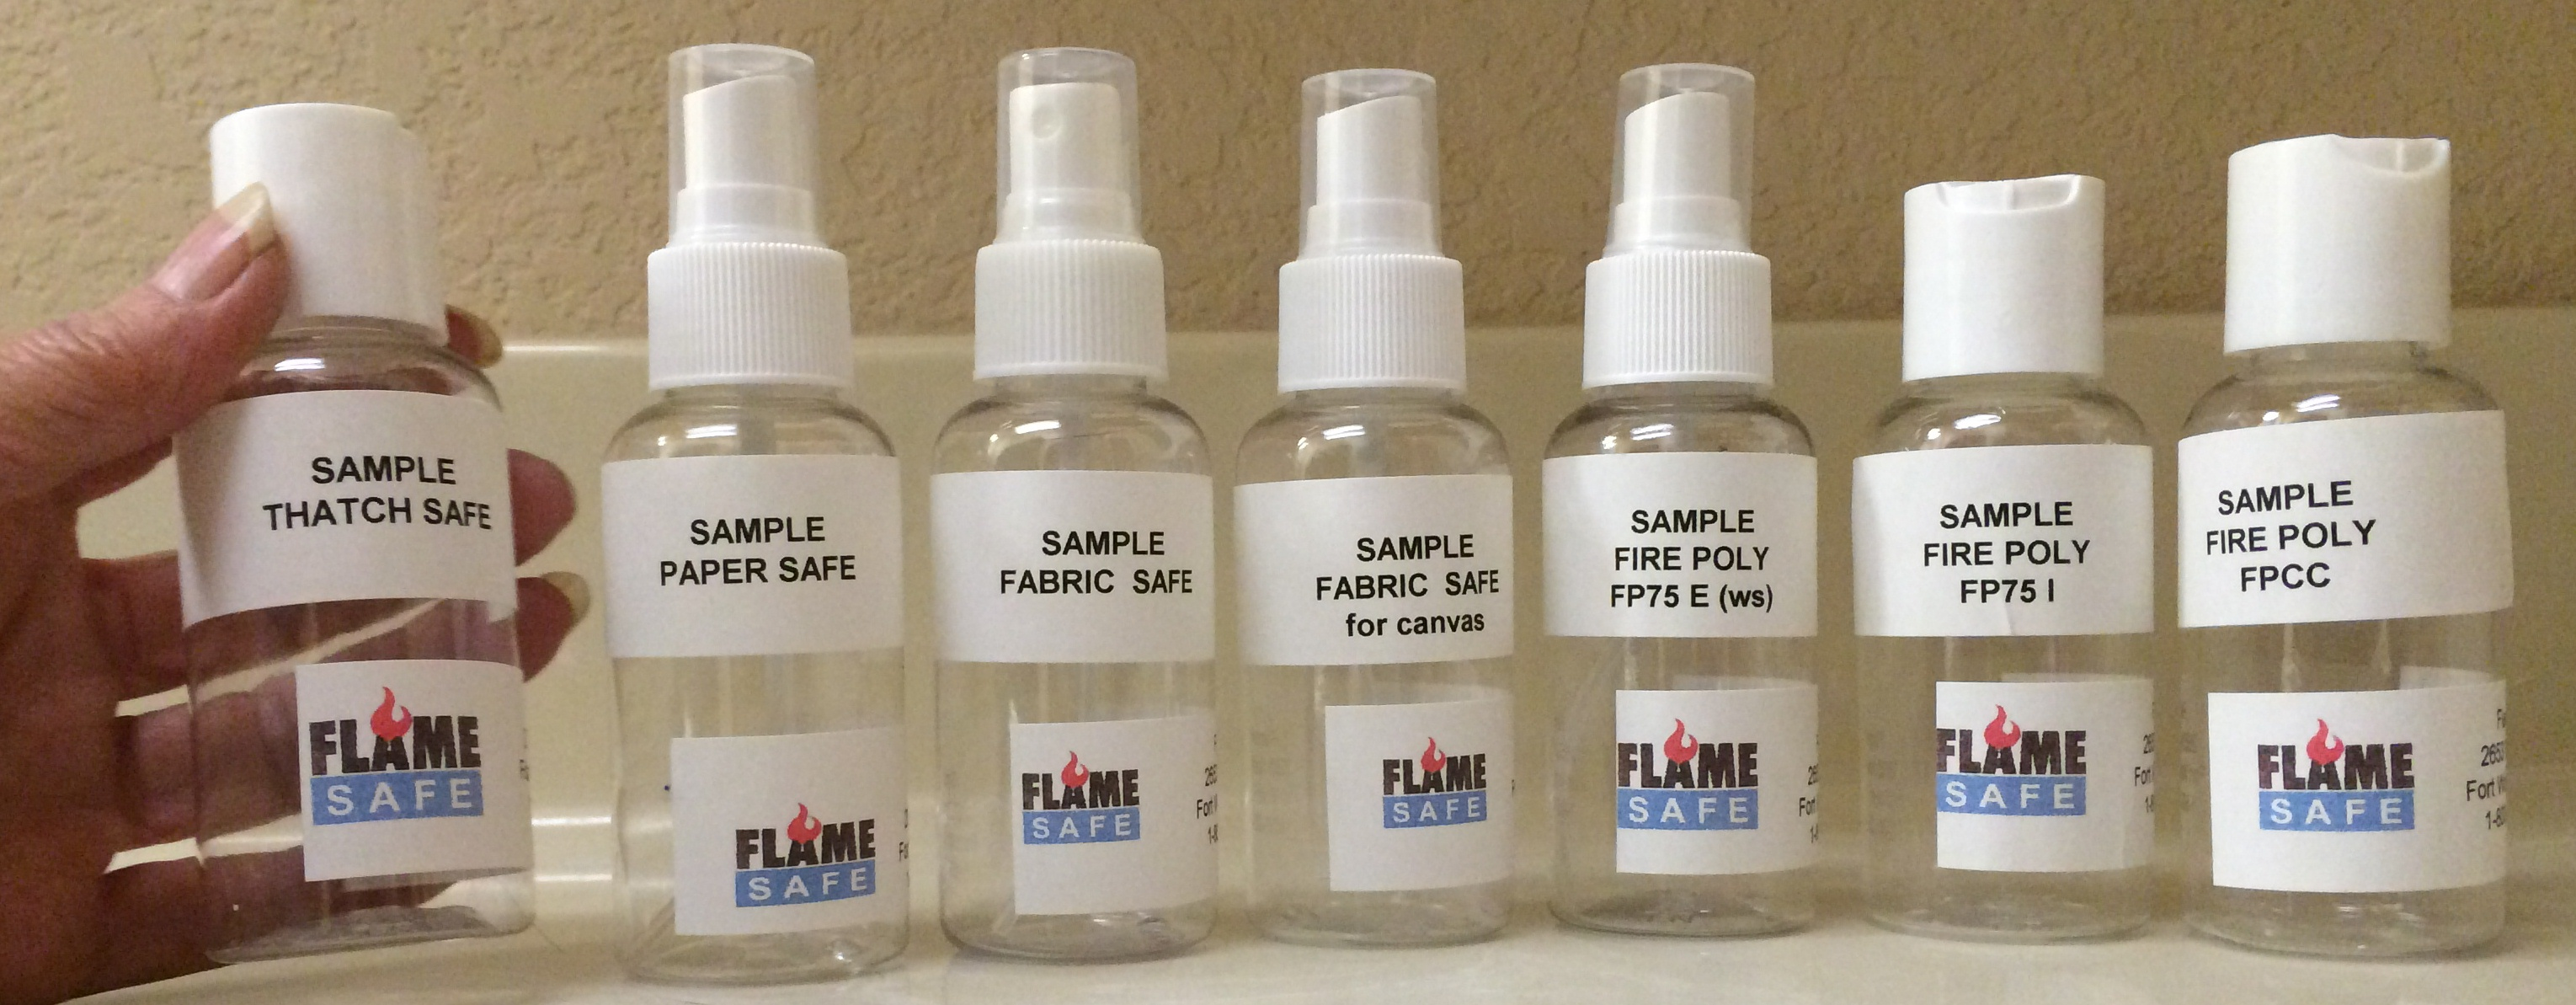 sample bottles